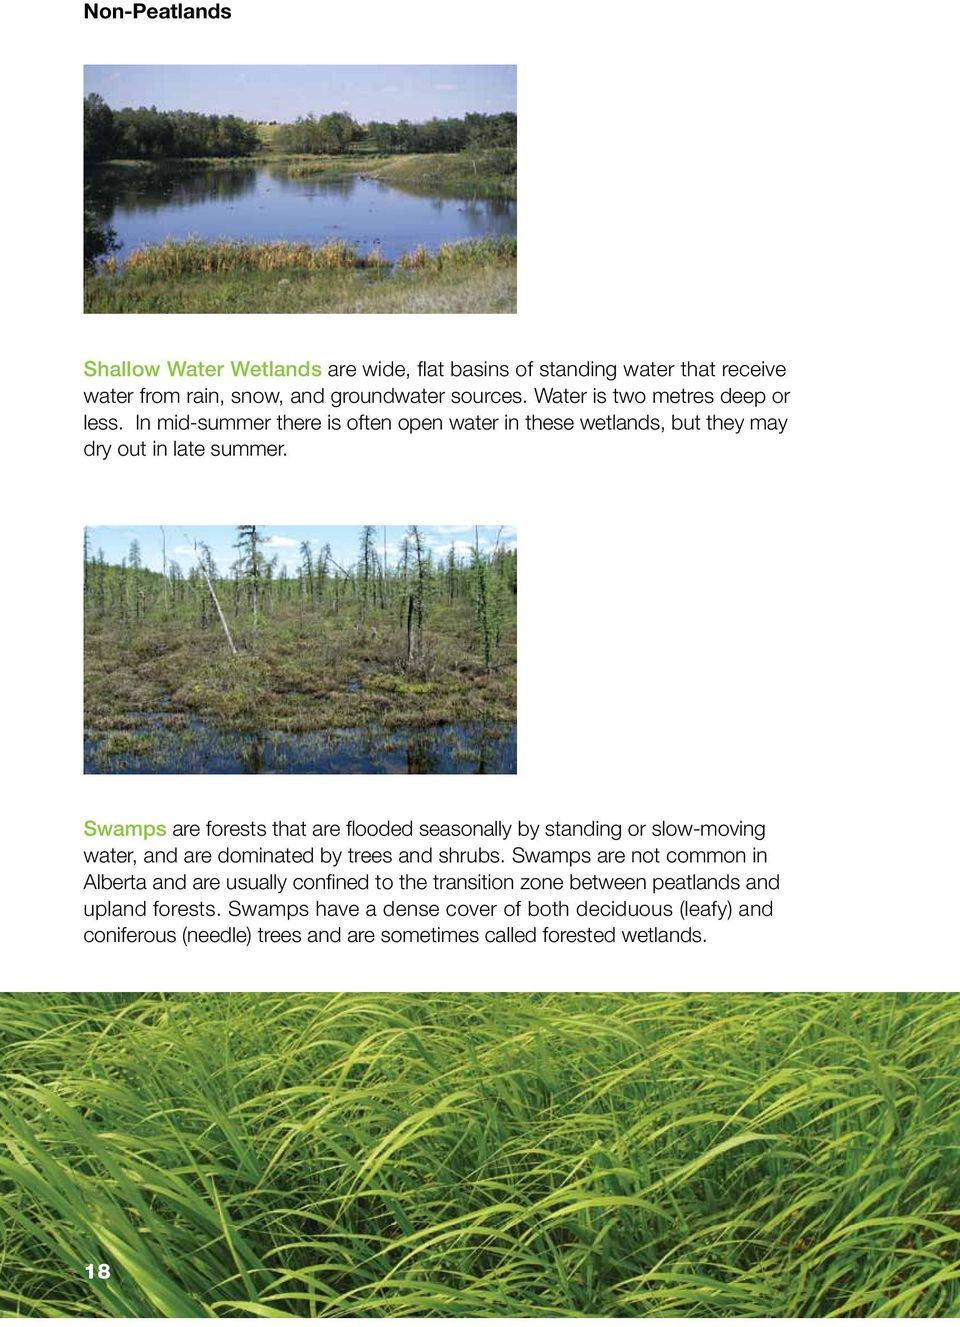 Swamps are forests that are flooded seasonally by standing or slow-moving water, and are dominated by trees and shrubs.